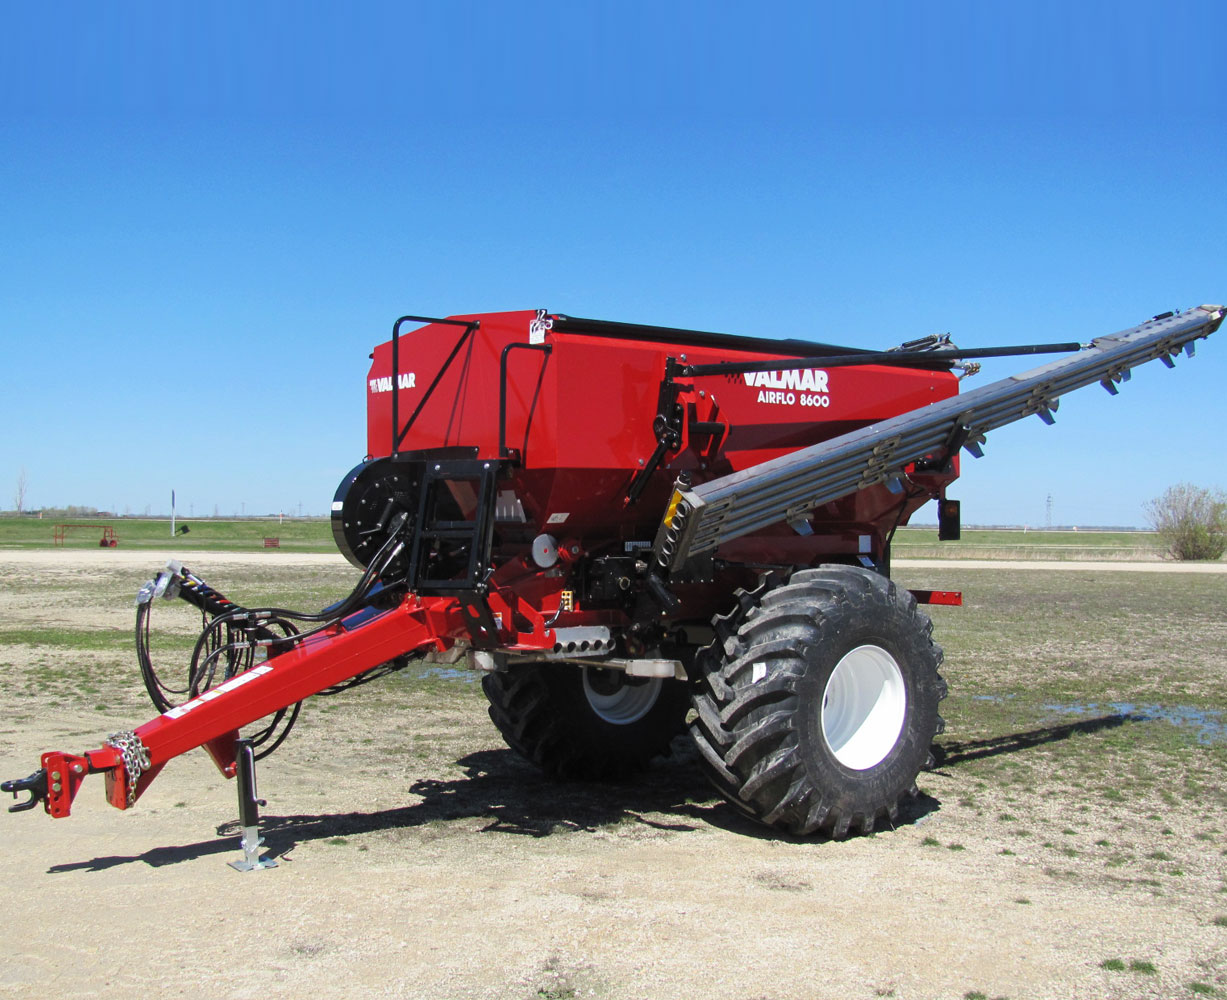 Copy of AirFlo 8600 Fertilizer Spreader (7/9)